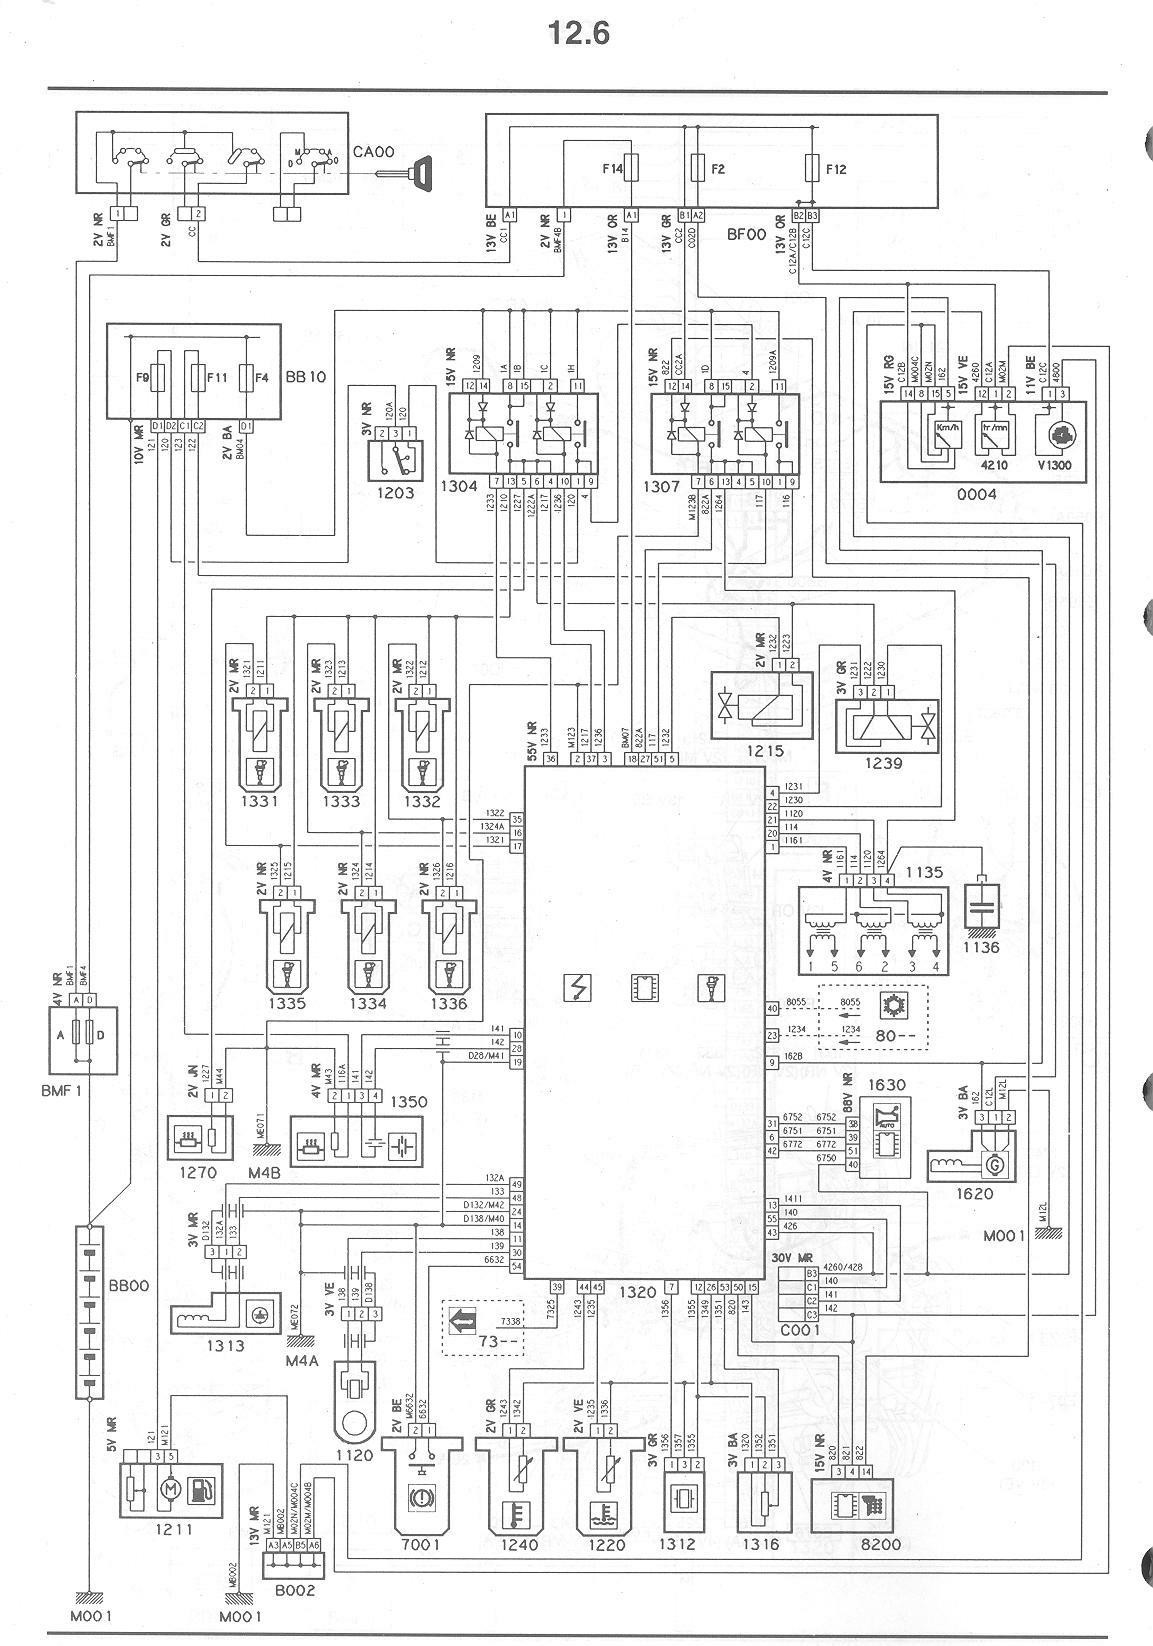 Ds4 Wiring Diagram [vz 7262] Wiring Harness for Pioneer Dxt X2669ui Free Download Wiring Diagrams Download Diagram Of Ds4 Wiring Diagram